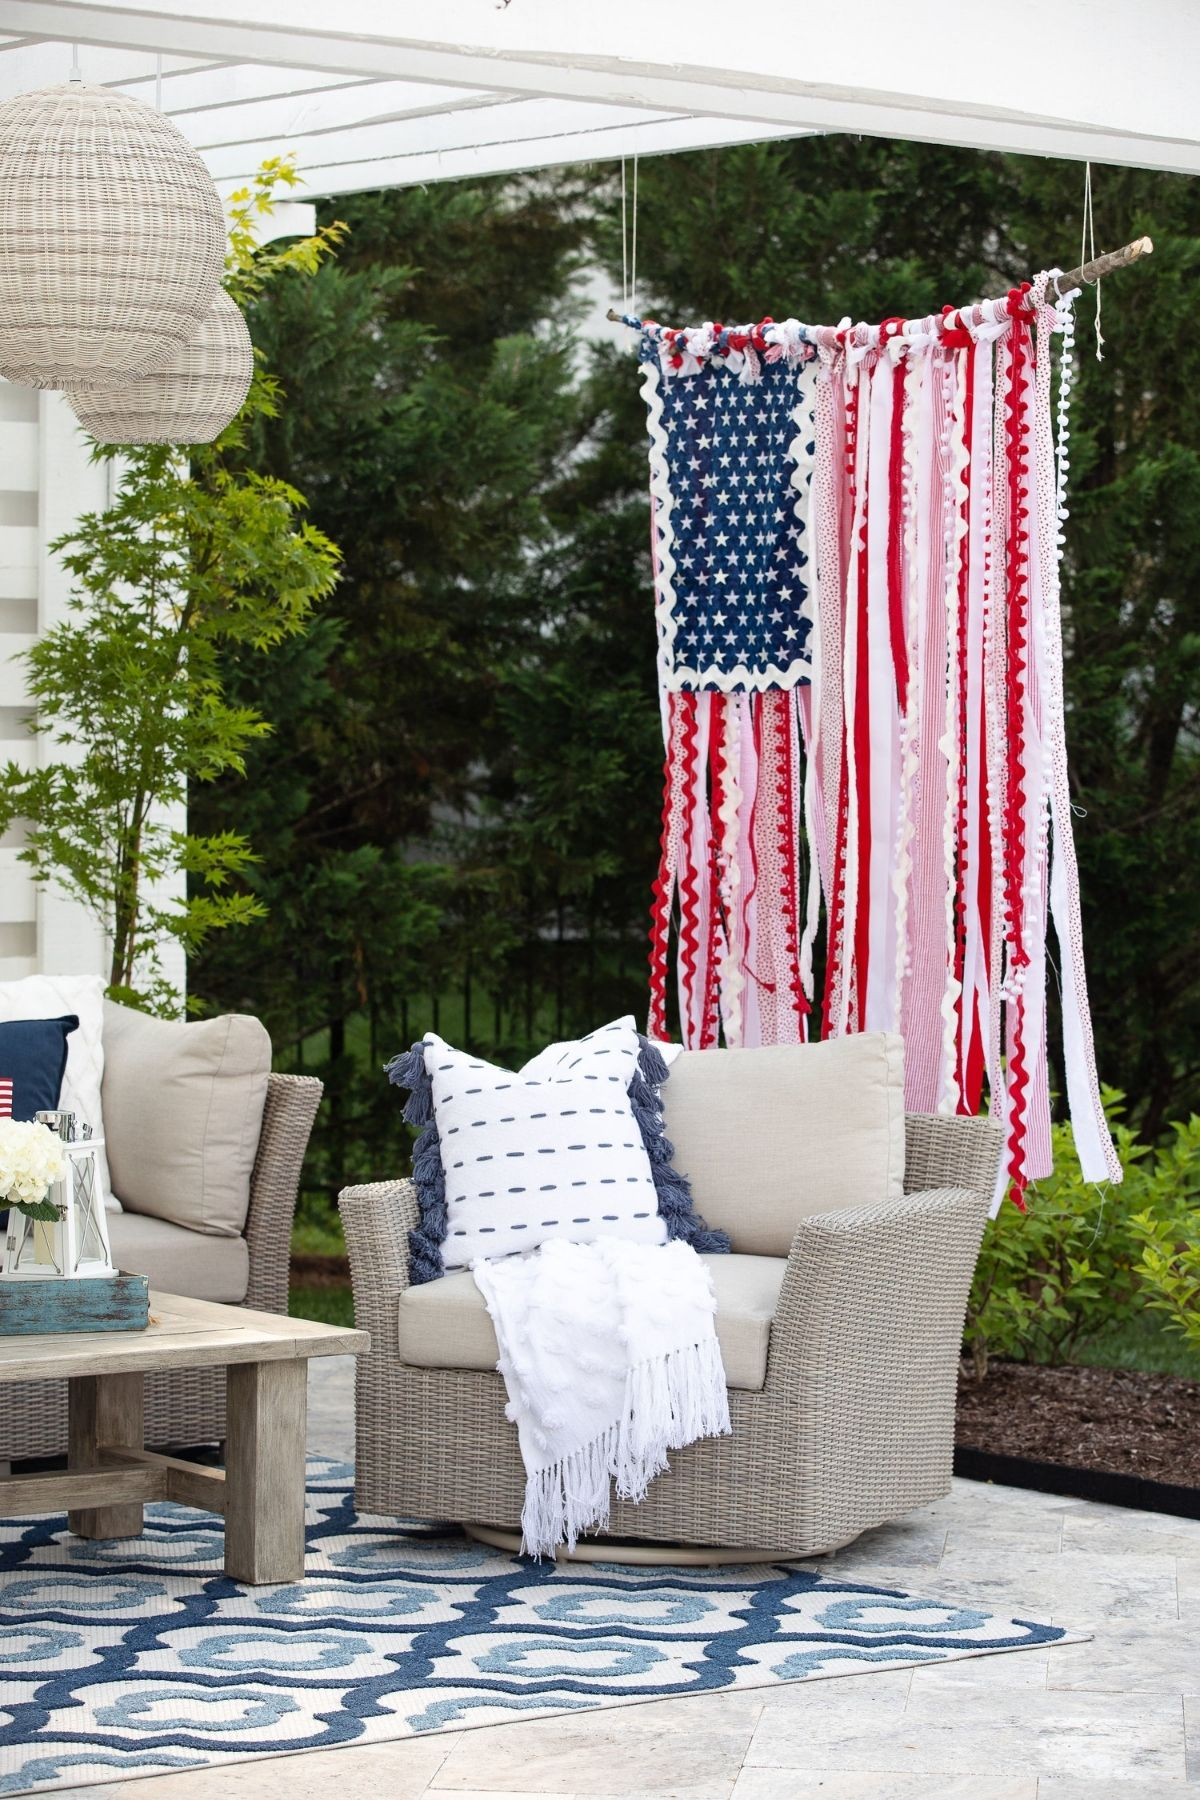 hanging american flag made with rags next to porch furniture